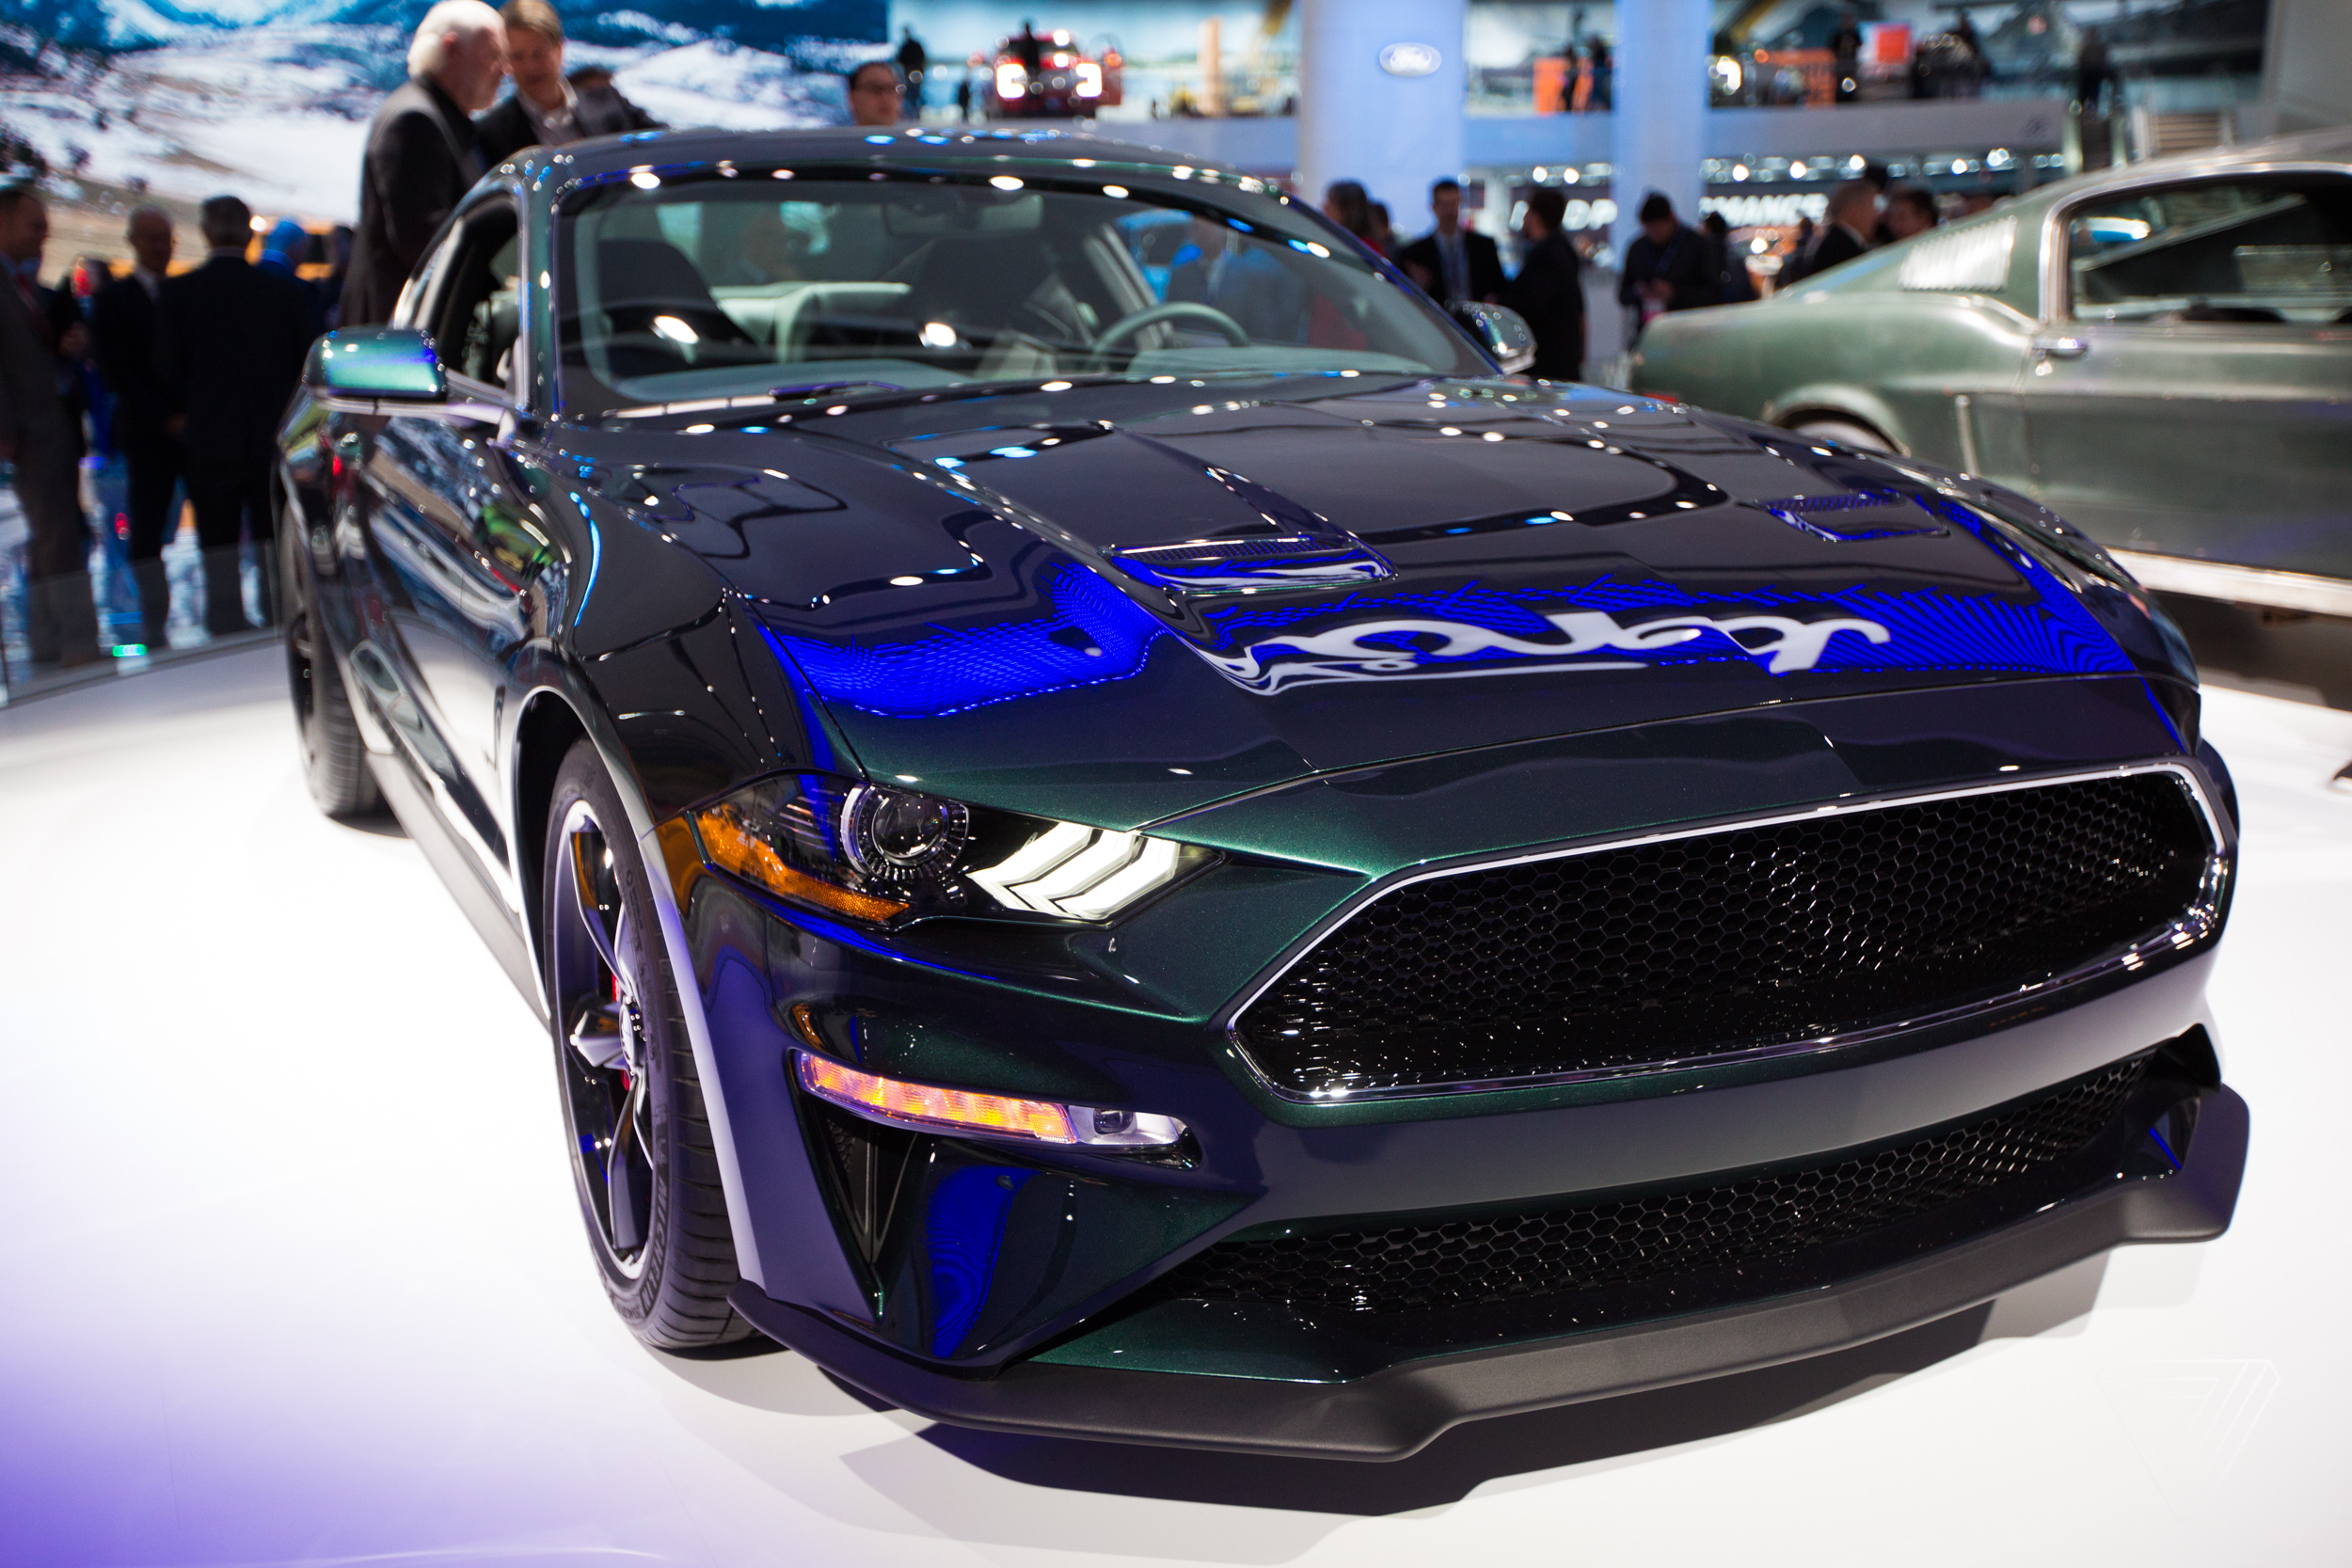 One Thing You Can Get On The New Bullitt Mustang That Highlights Its Car Tech A 12 Inch LCD Touchscreen Cant From Old Steve